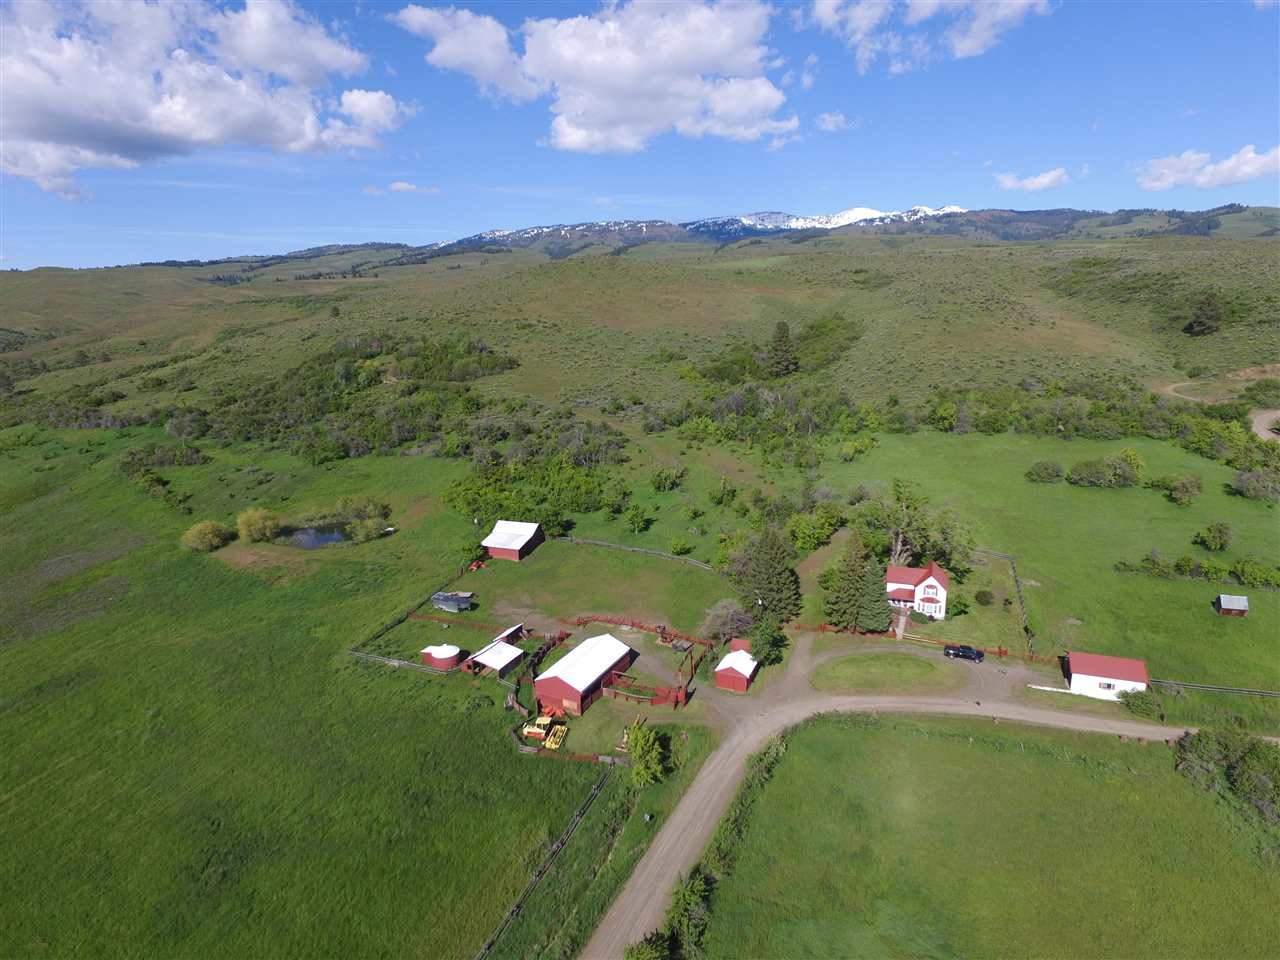 Farm / Ranch for Sale at 2374 Cottonwood Rd. Council, Idaho 83612